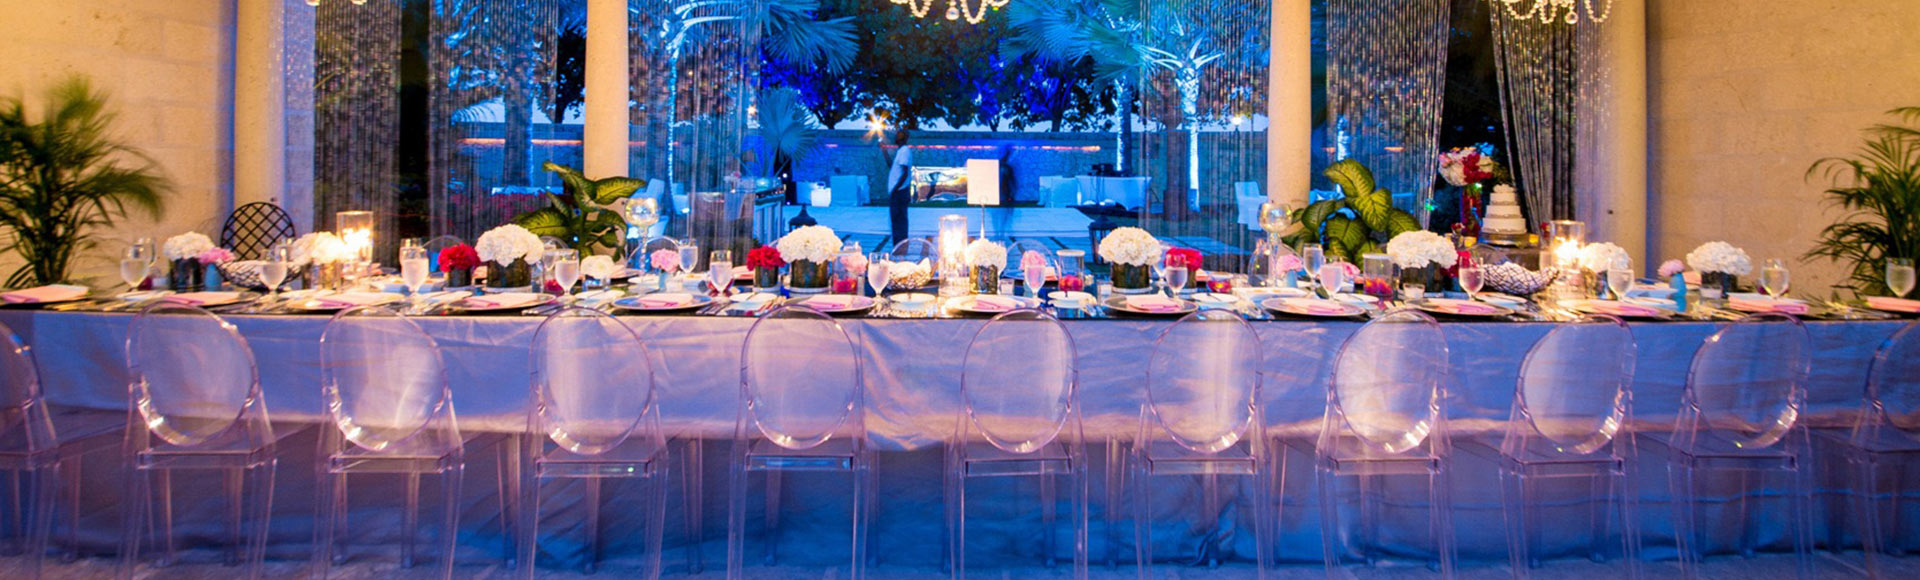 Destination Turks and Caicos weddings come complete with pristine, white beaches & sparkling turquoise waters.